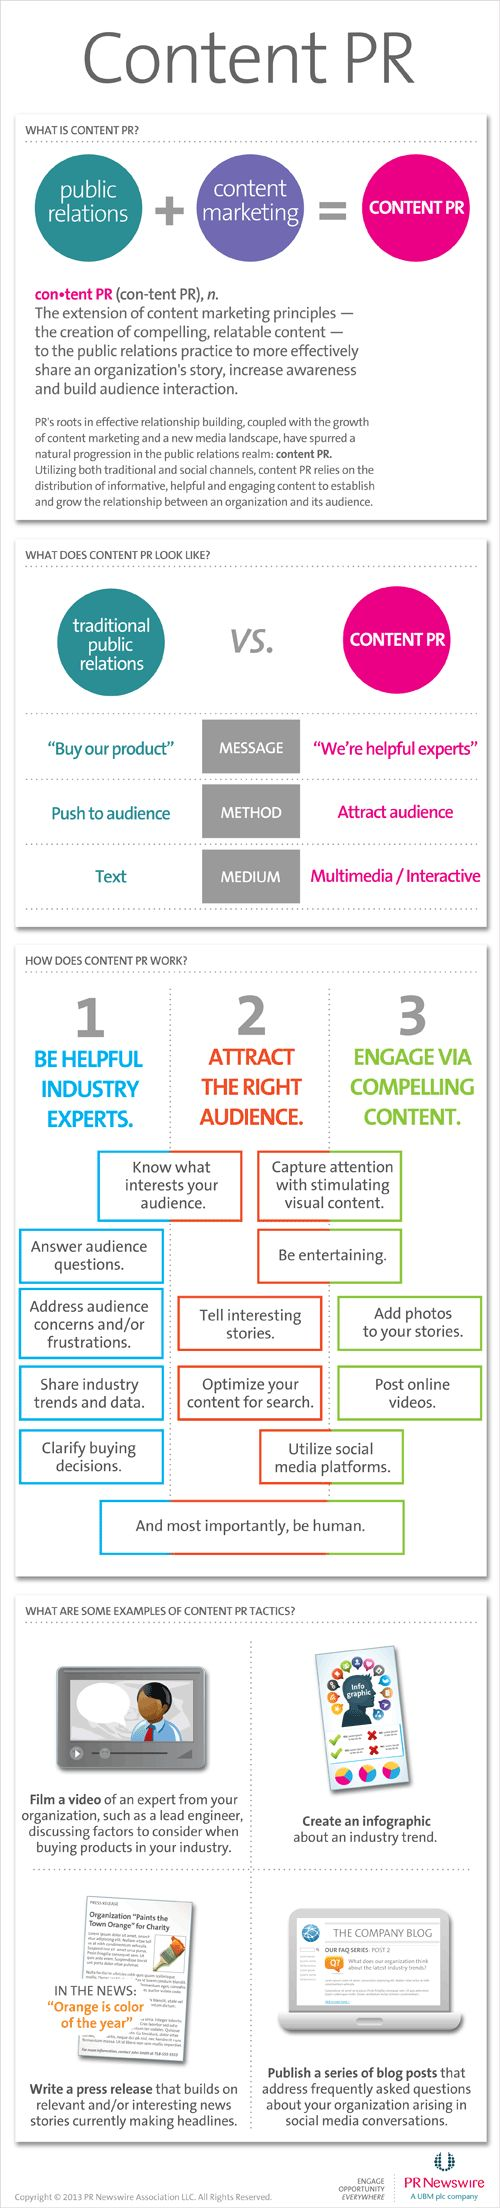 What Is Content Public Relations And What Is Different From Traditional PR? #ContentPR #infographic Helpful for our Ebook in a day Project!